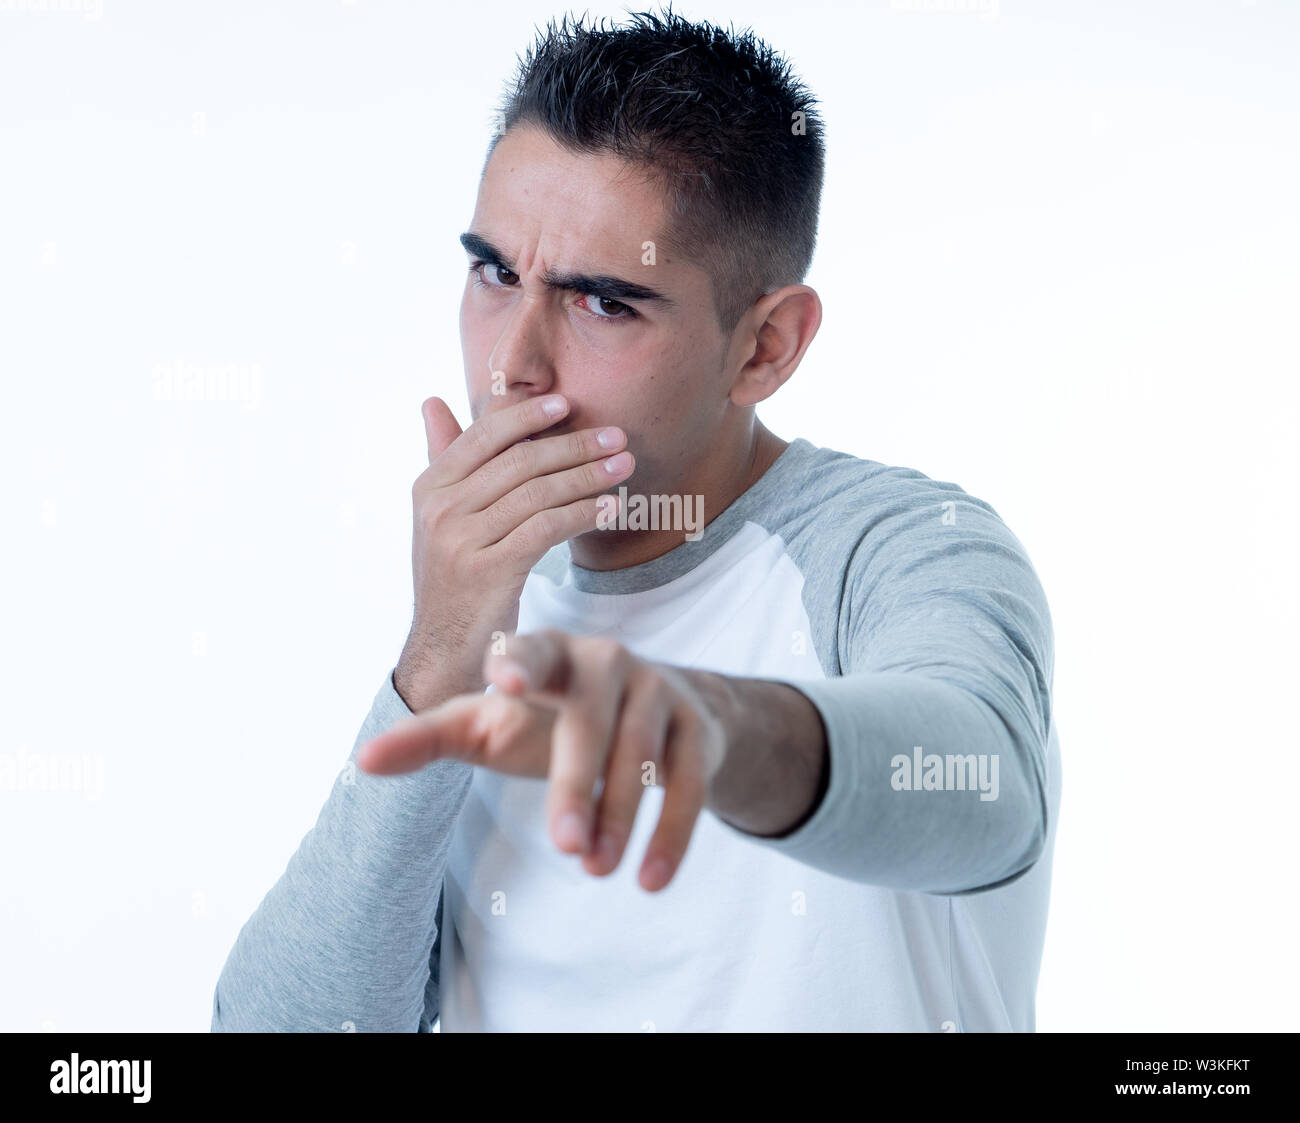 Portrait of young man in shock with scared face making frightened gestures and pointing at something scaring. Human emotions feelings and facial expre - Stock Image